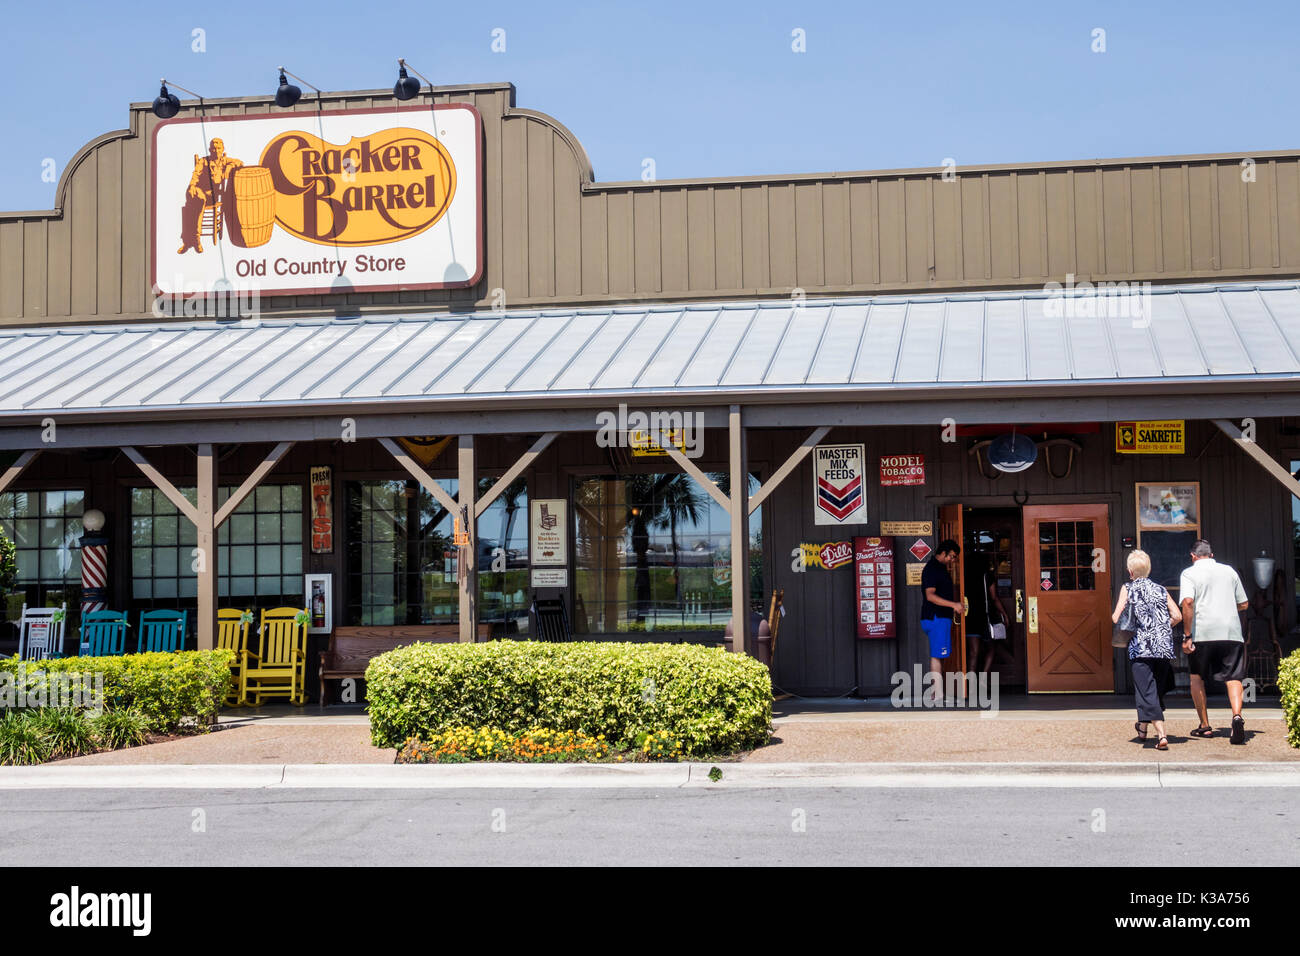 Florida Fort Pierce Cracker Barrel Old Country Store restaurant gift shop Southern theme outside exterior sign exterior front entrance - Stock Image